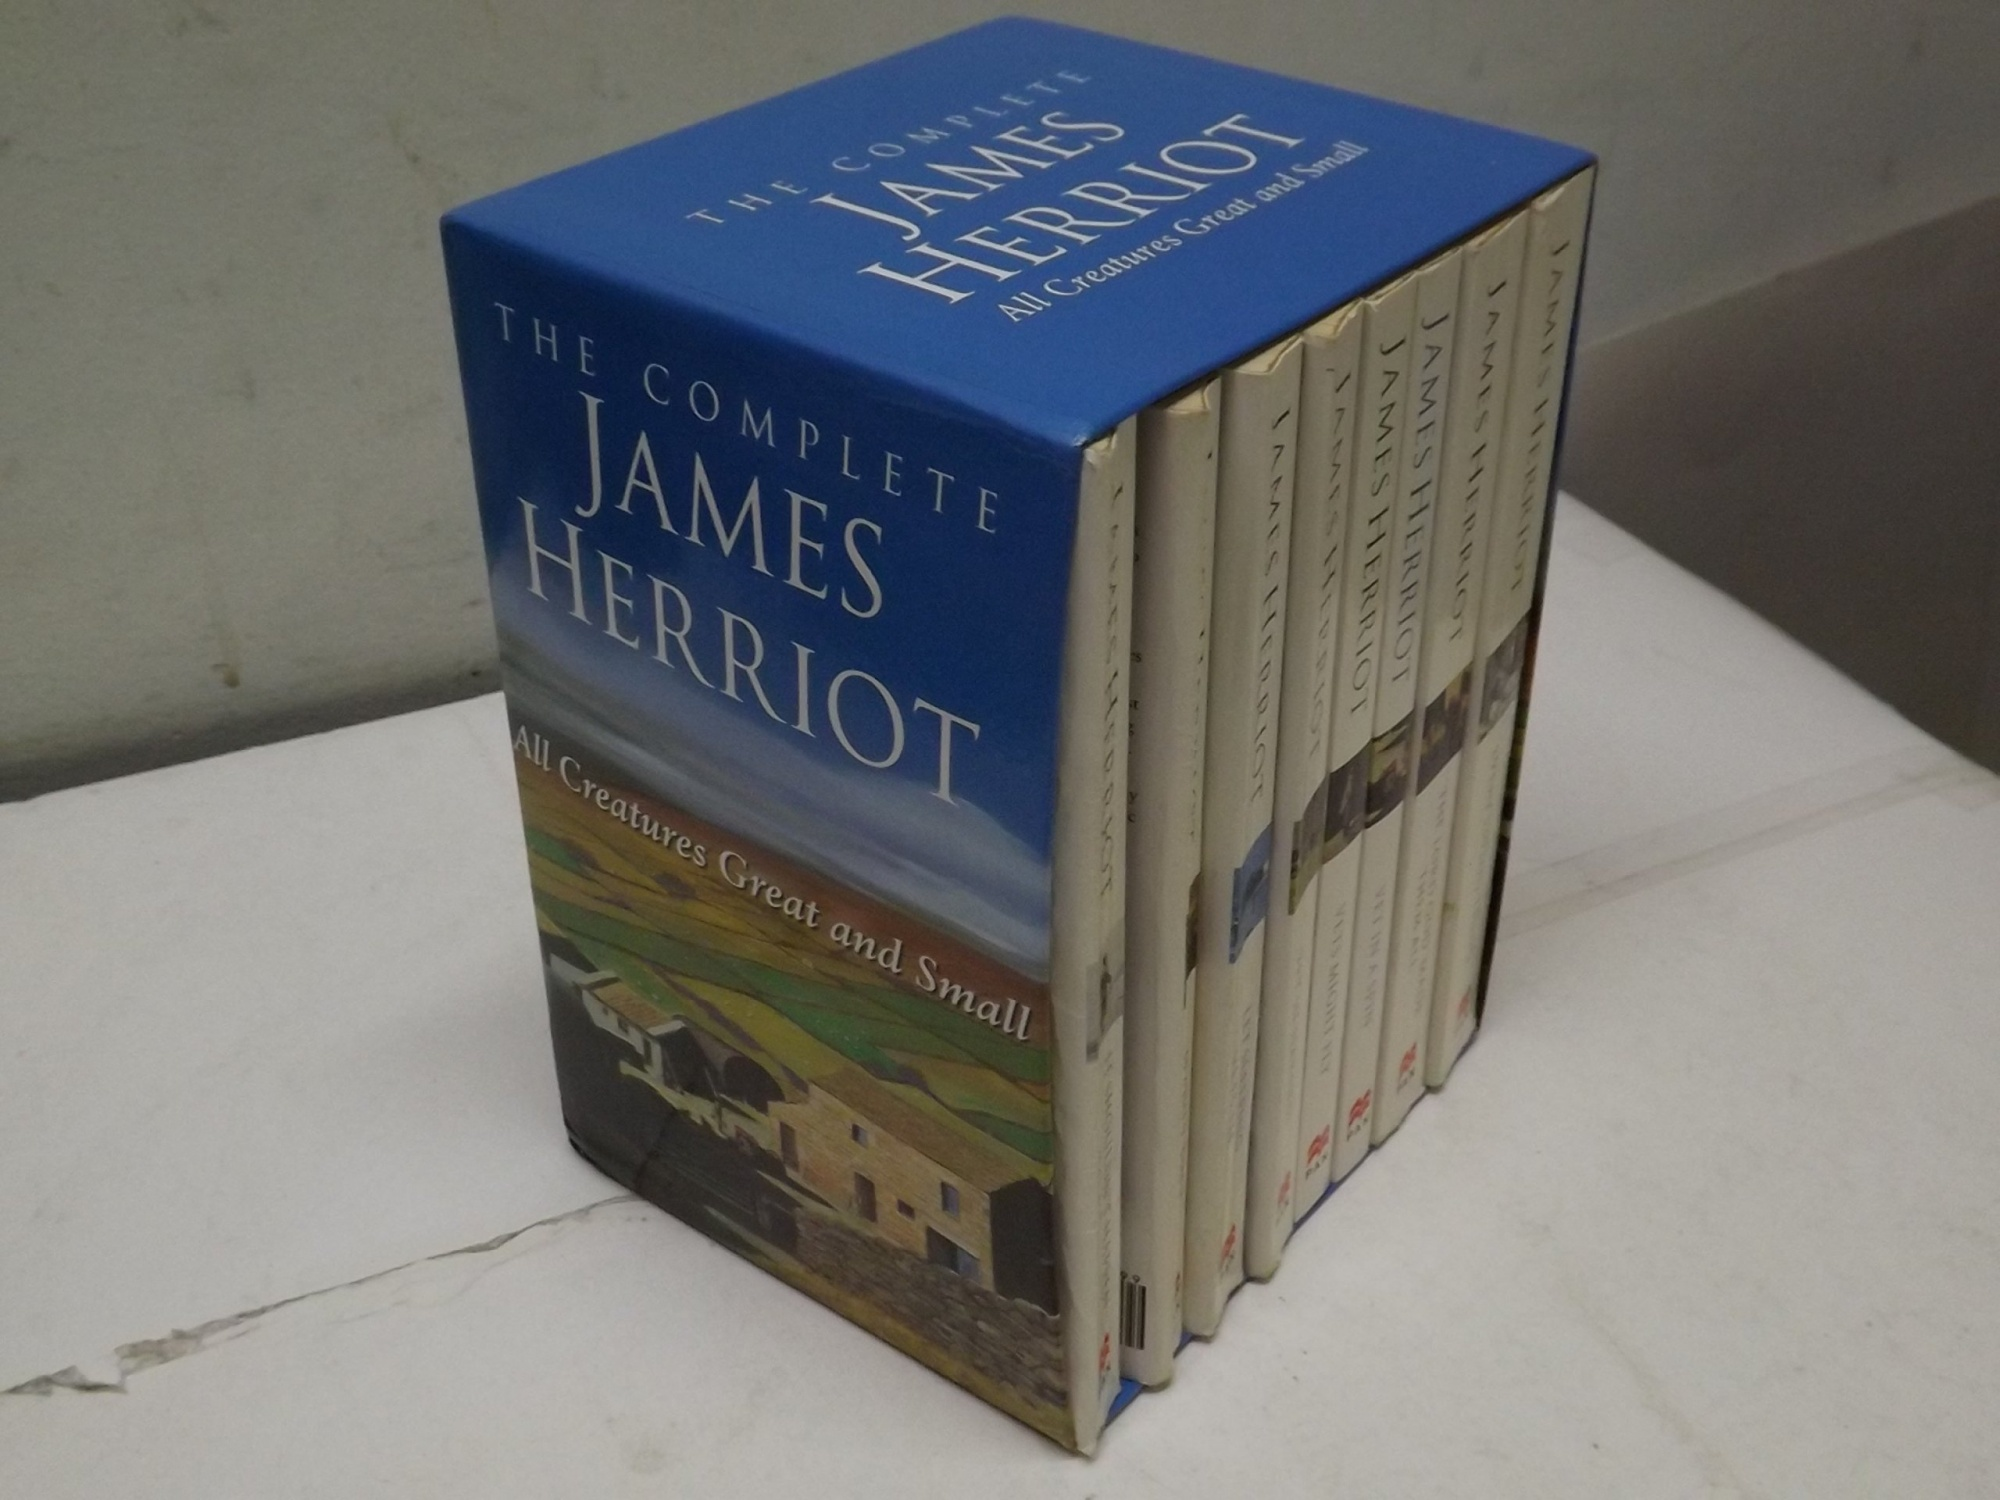 The Complete James Herriot by James Herriot, ISBN: 9780330447263